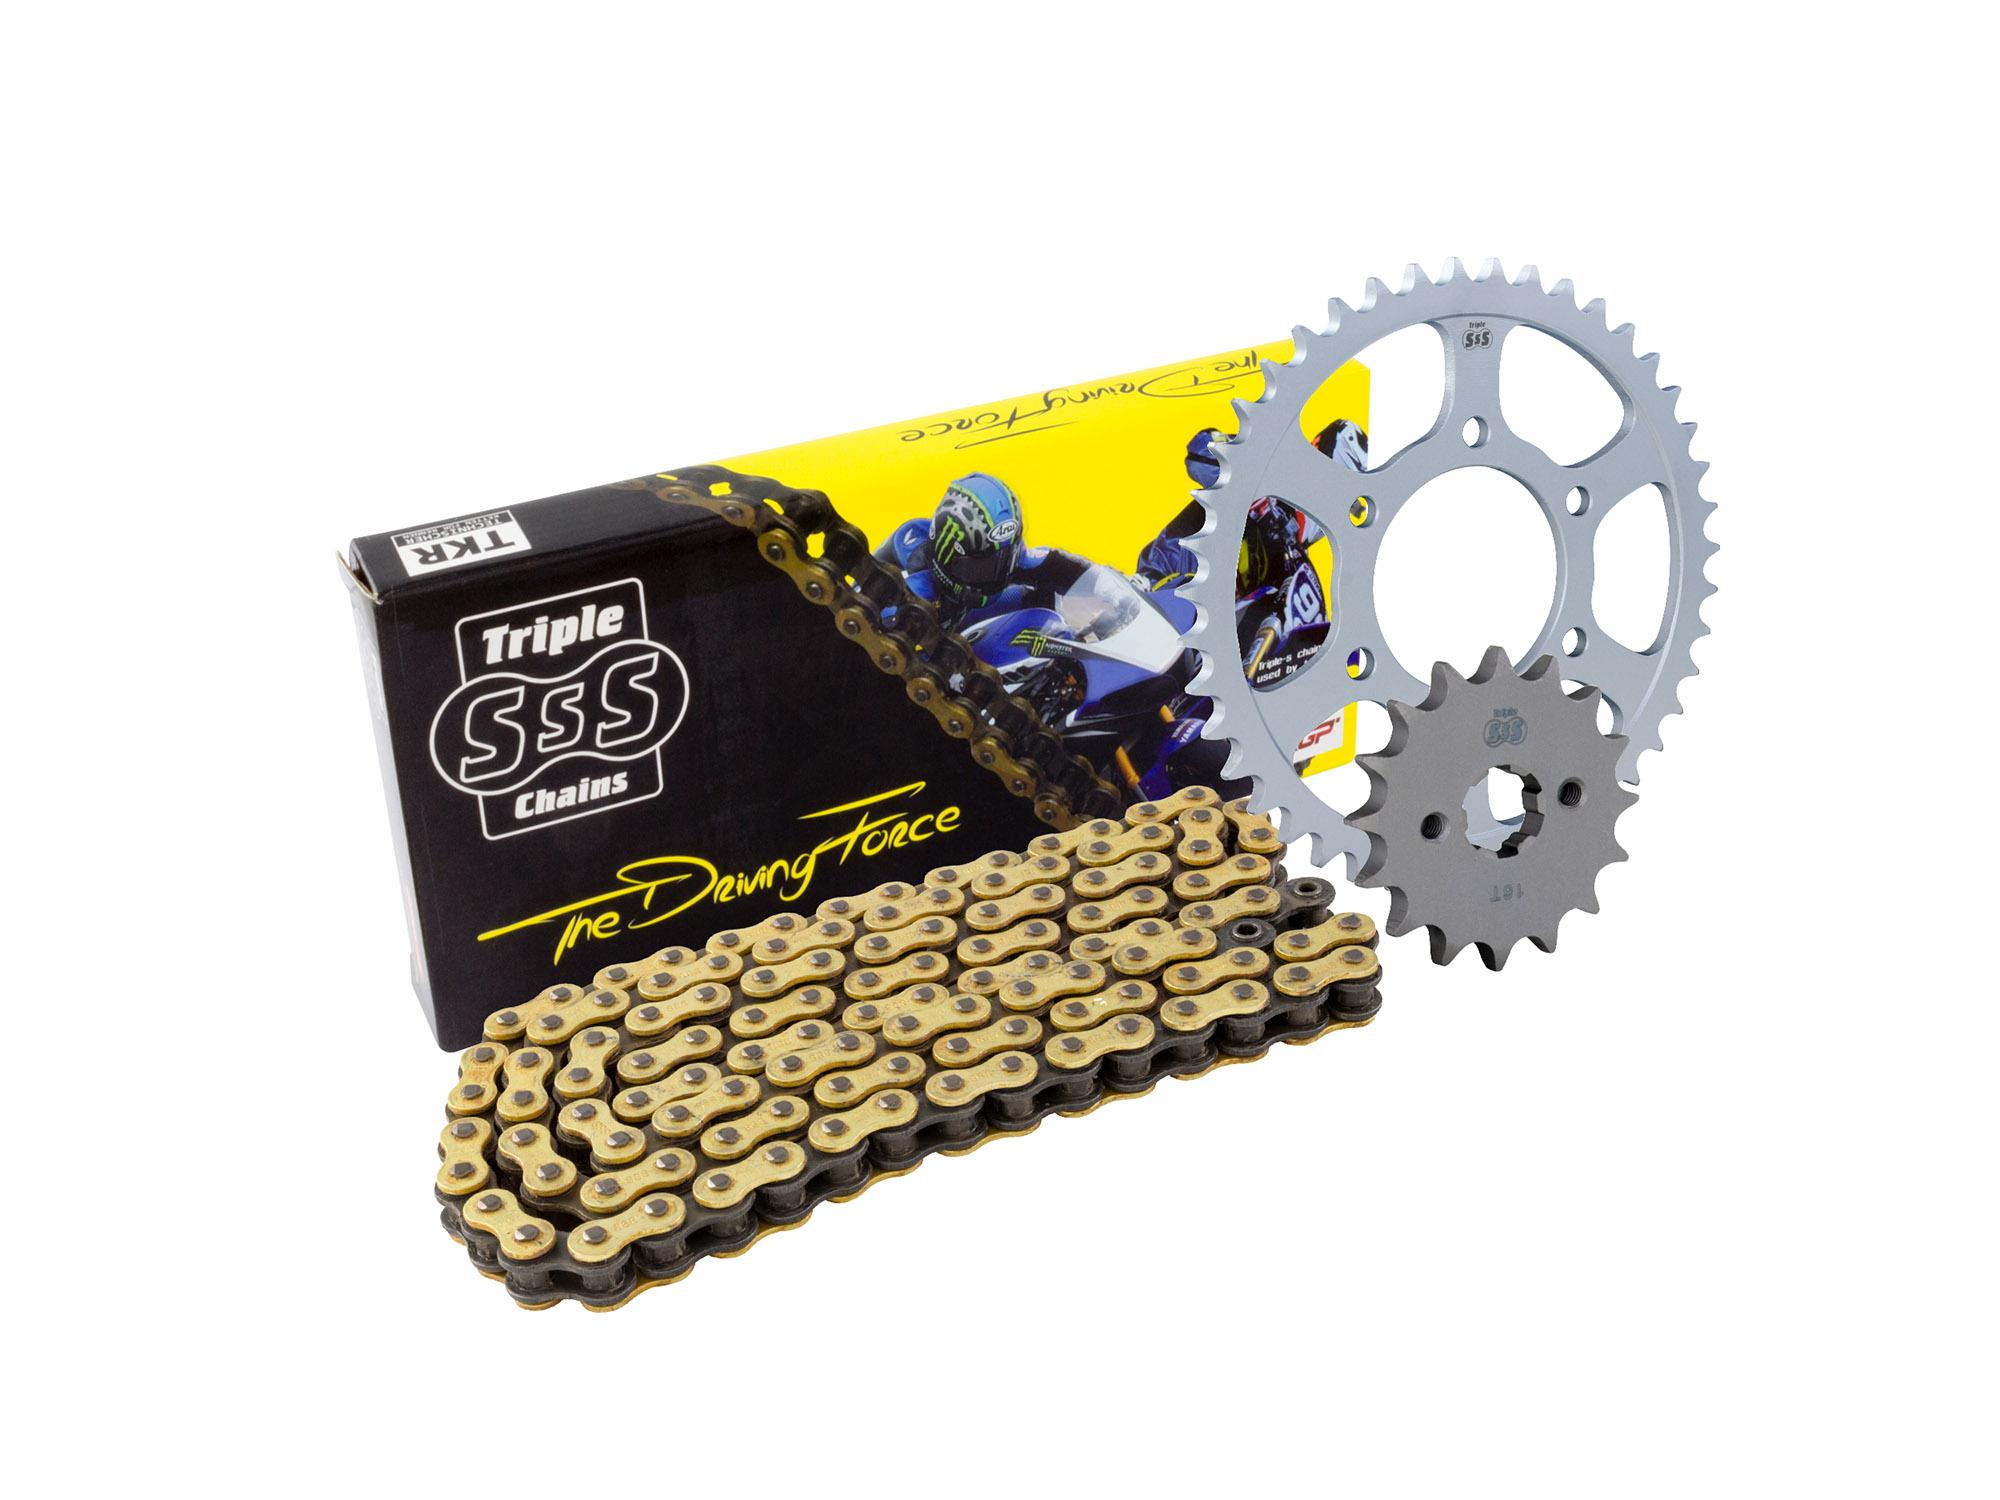 Yamaha MT07 14-16, XSR700 16 Chain & Sprocket Kit: 16T Front, 43T Rear, HD O-Ring Gold Chain 525H 108 Link